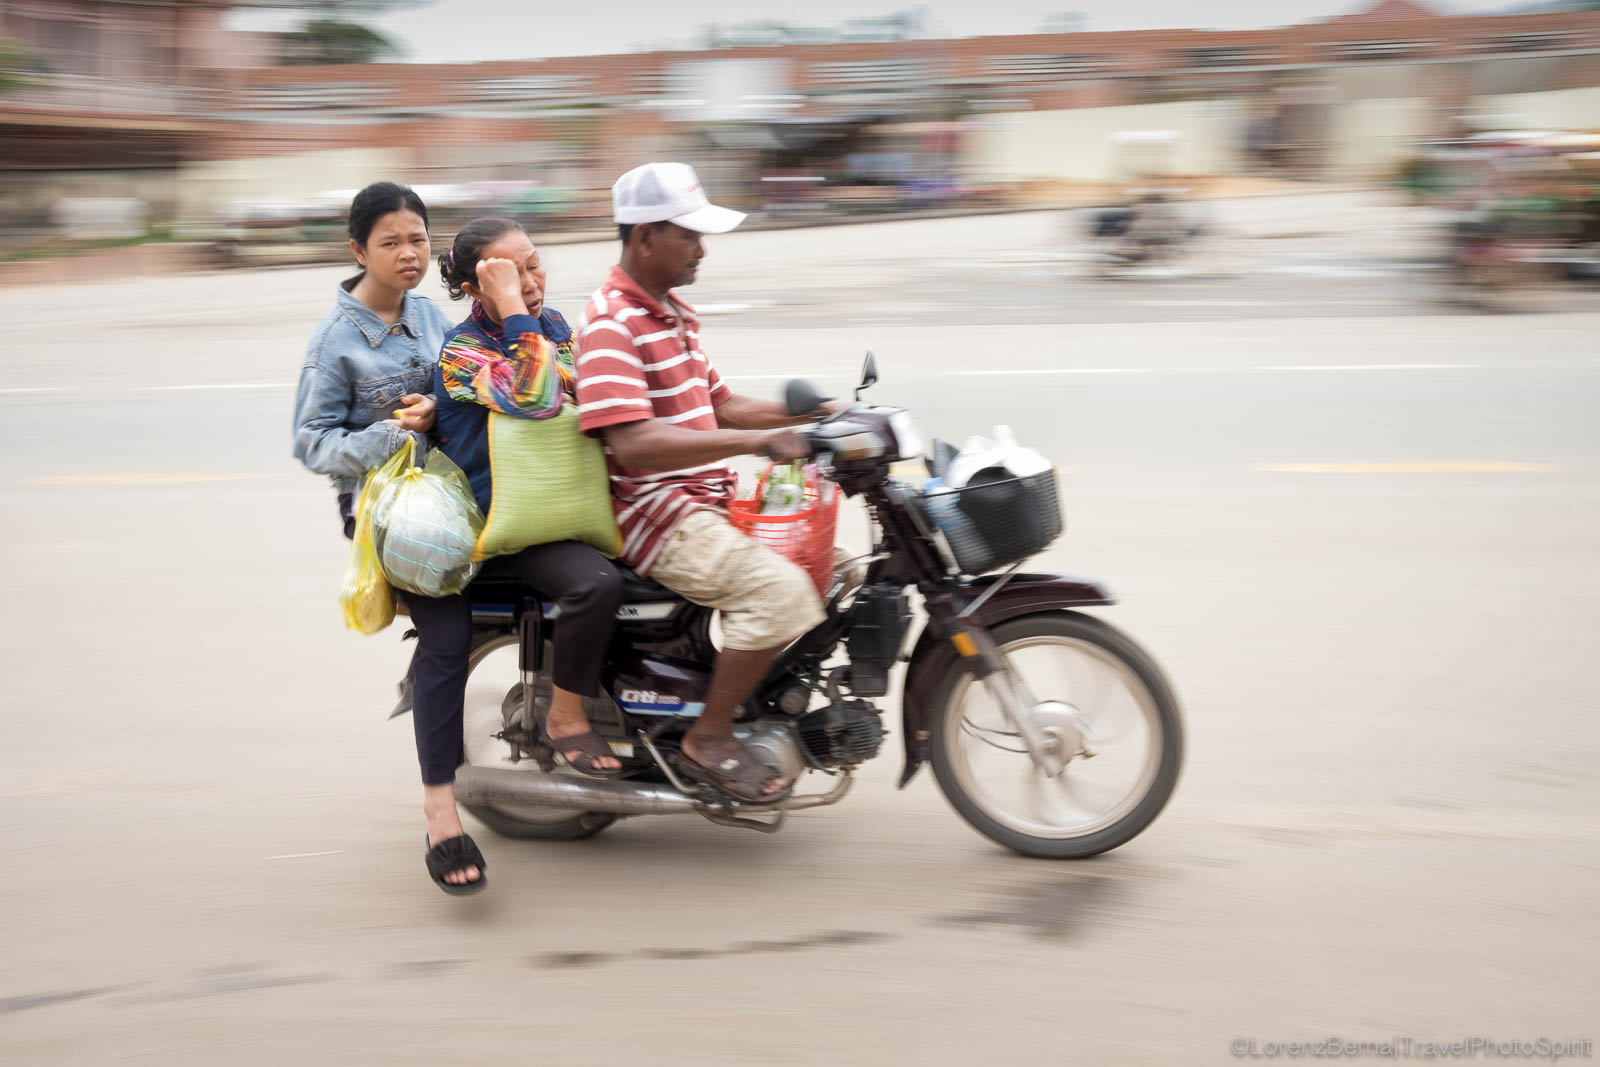 Family on wheels in Kampot, Cambodia.